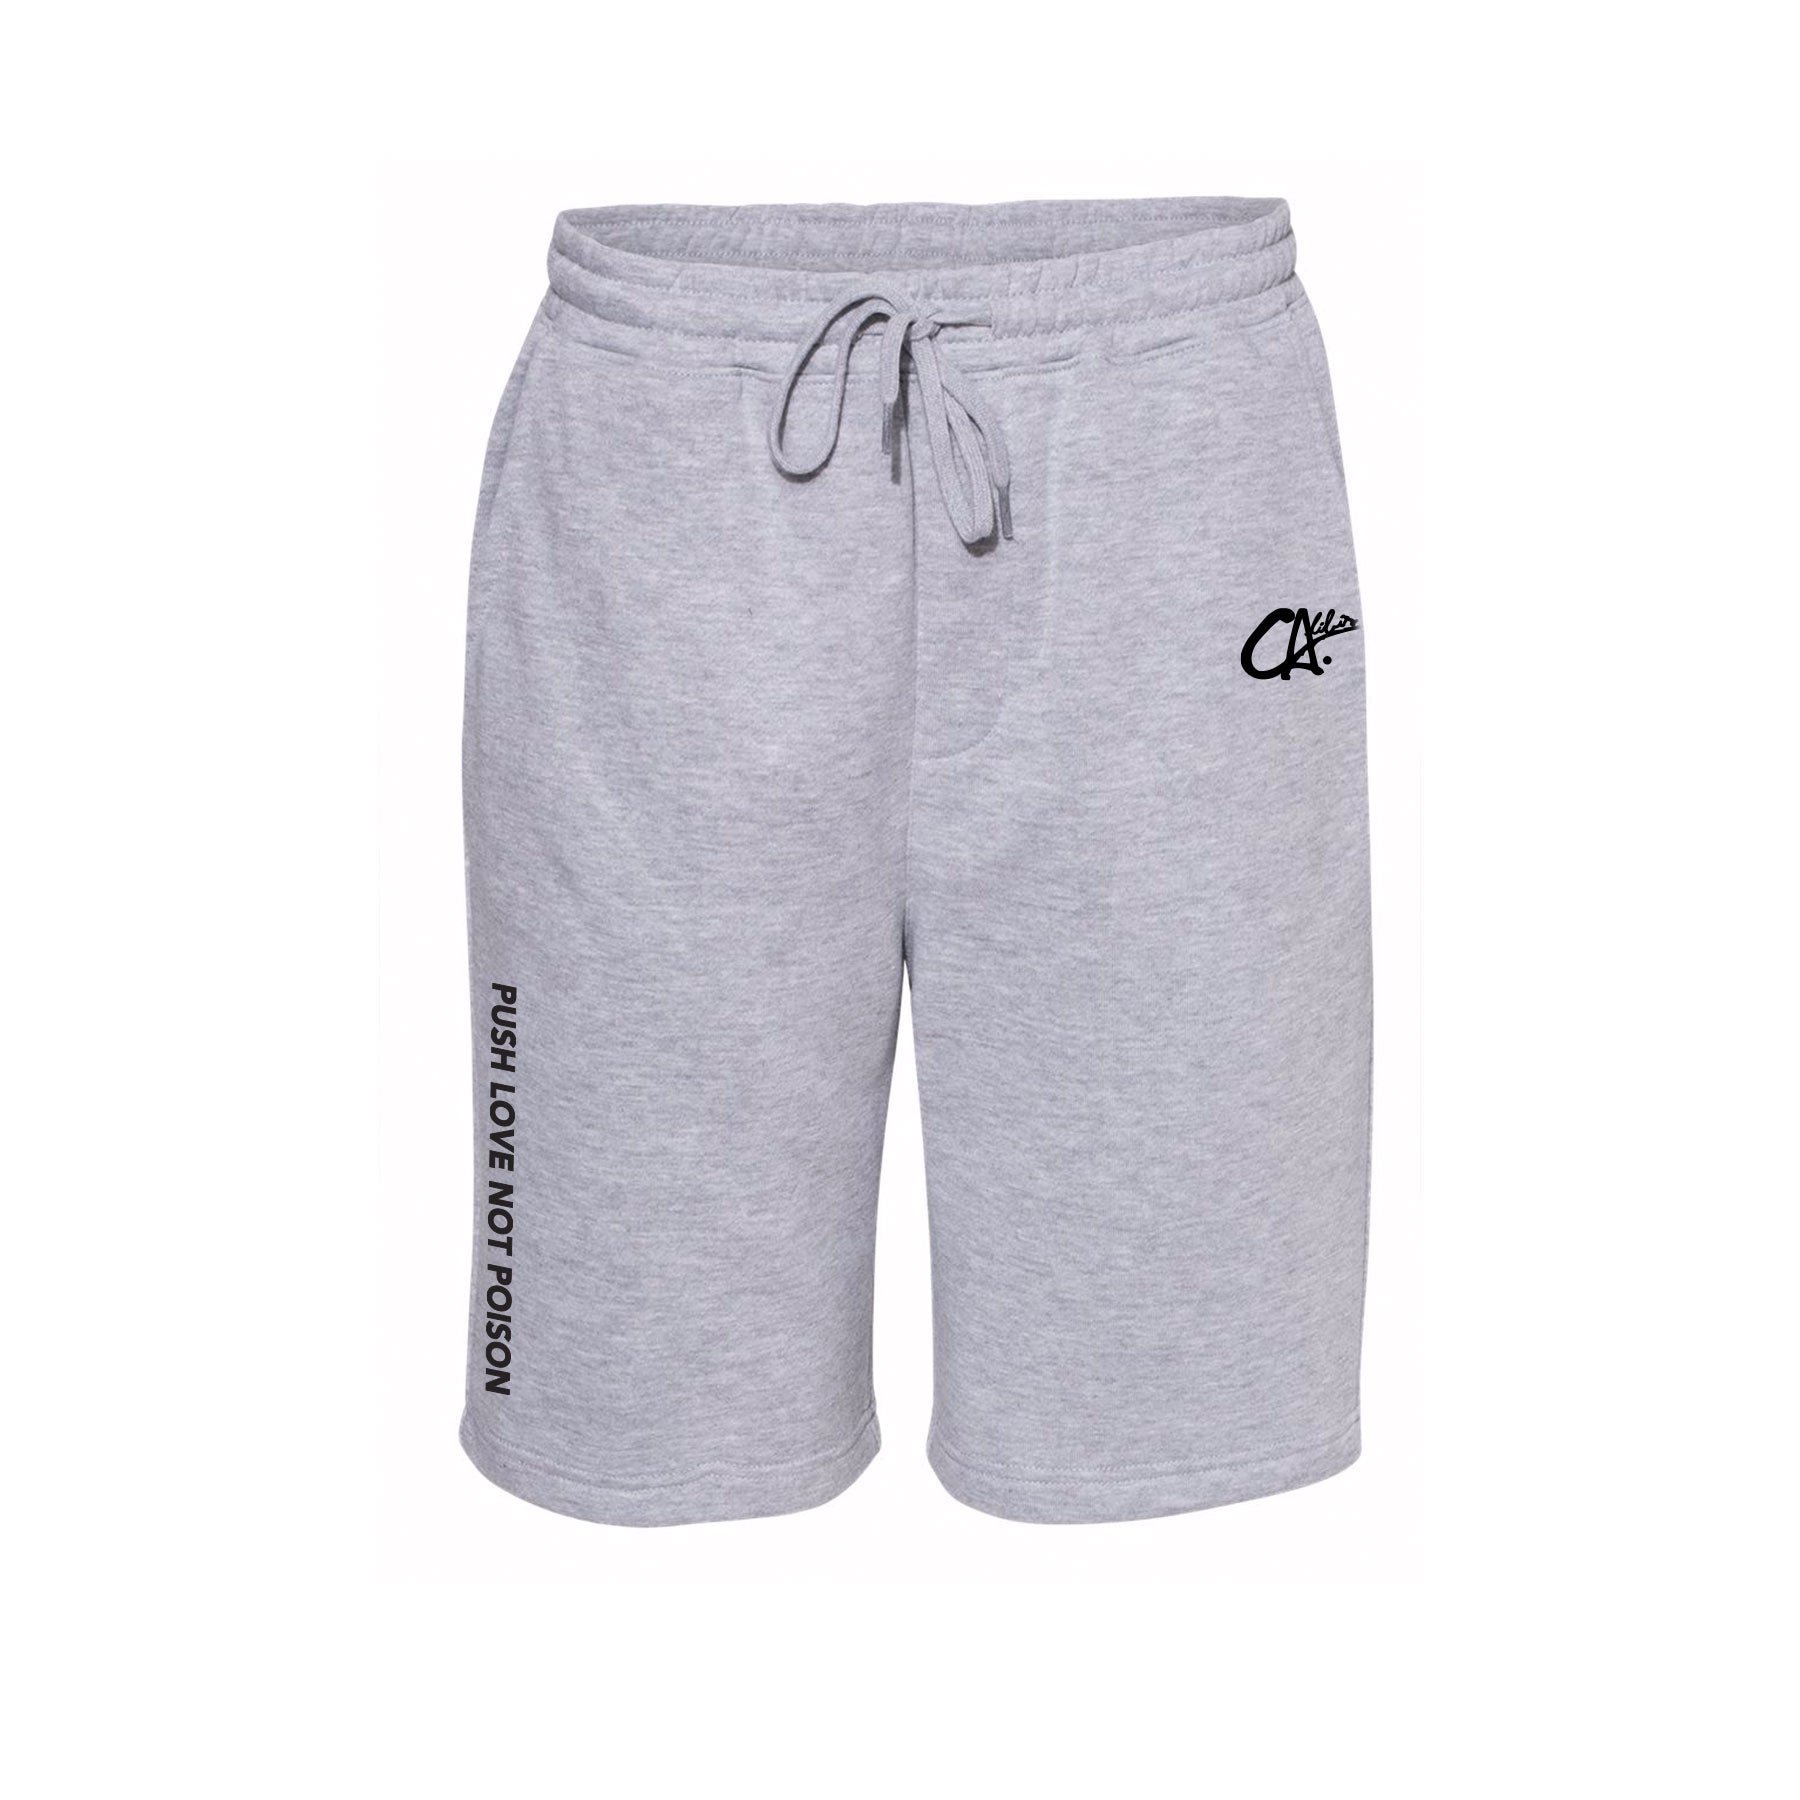 Classic Sweat Shorts by Calibis Clothing